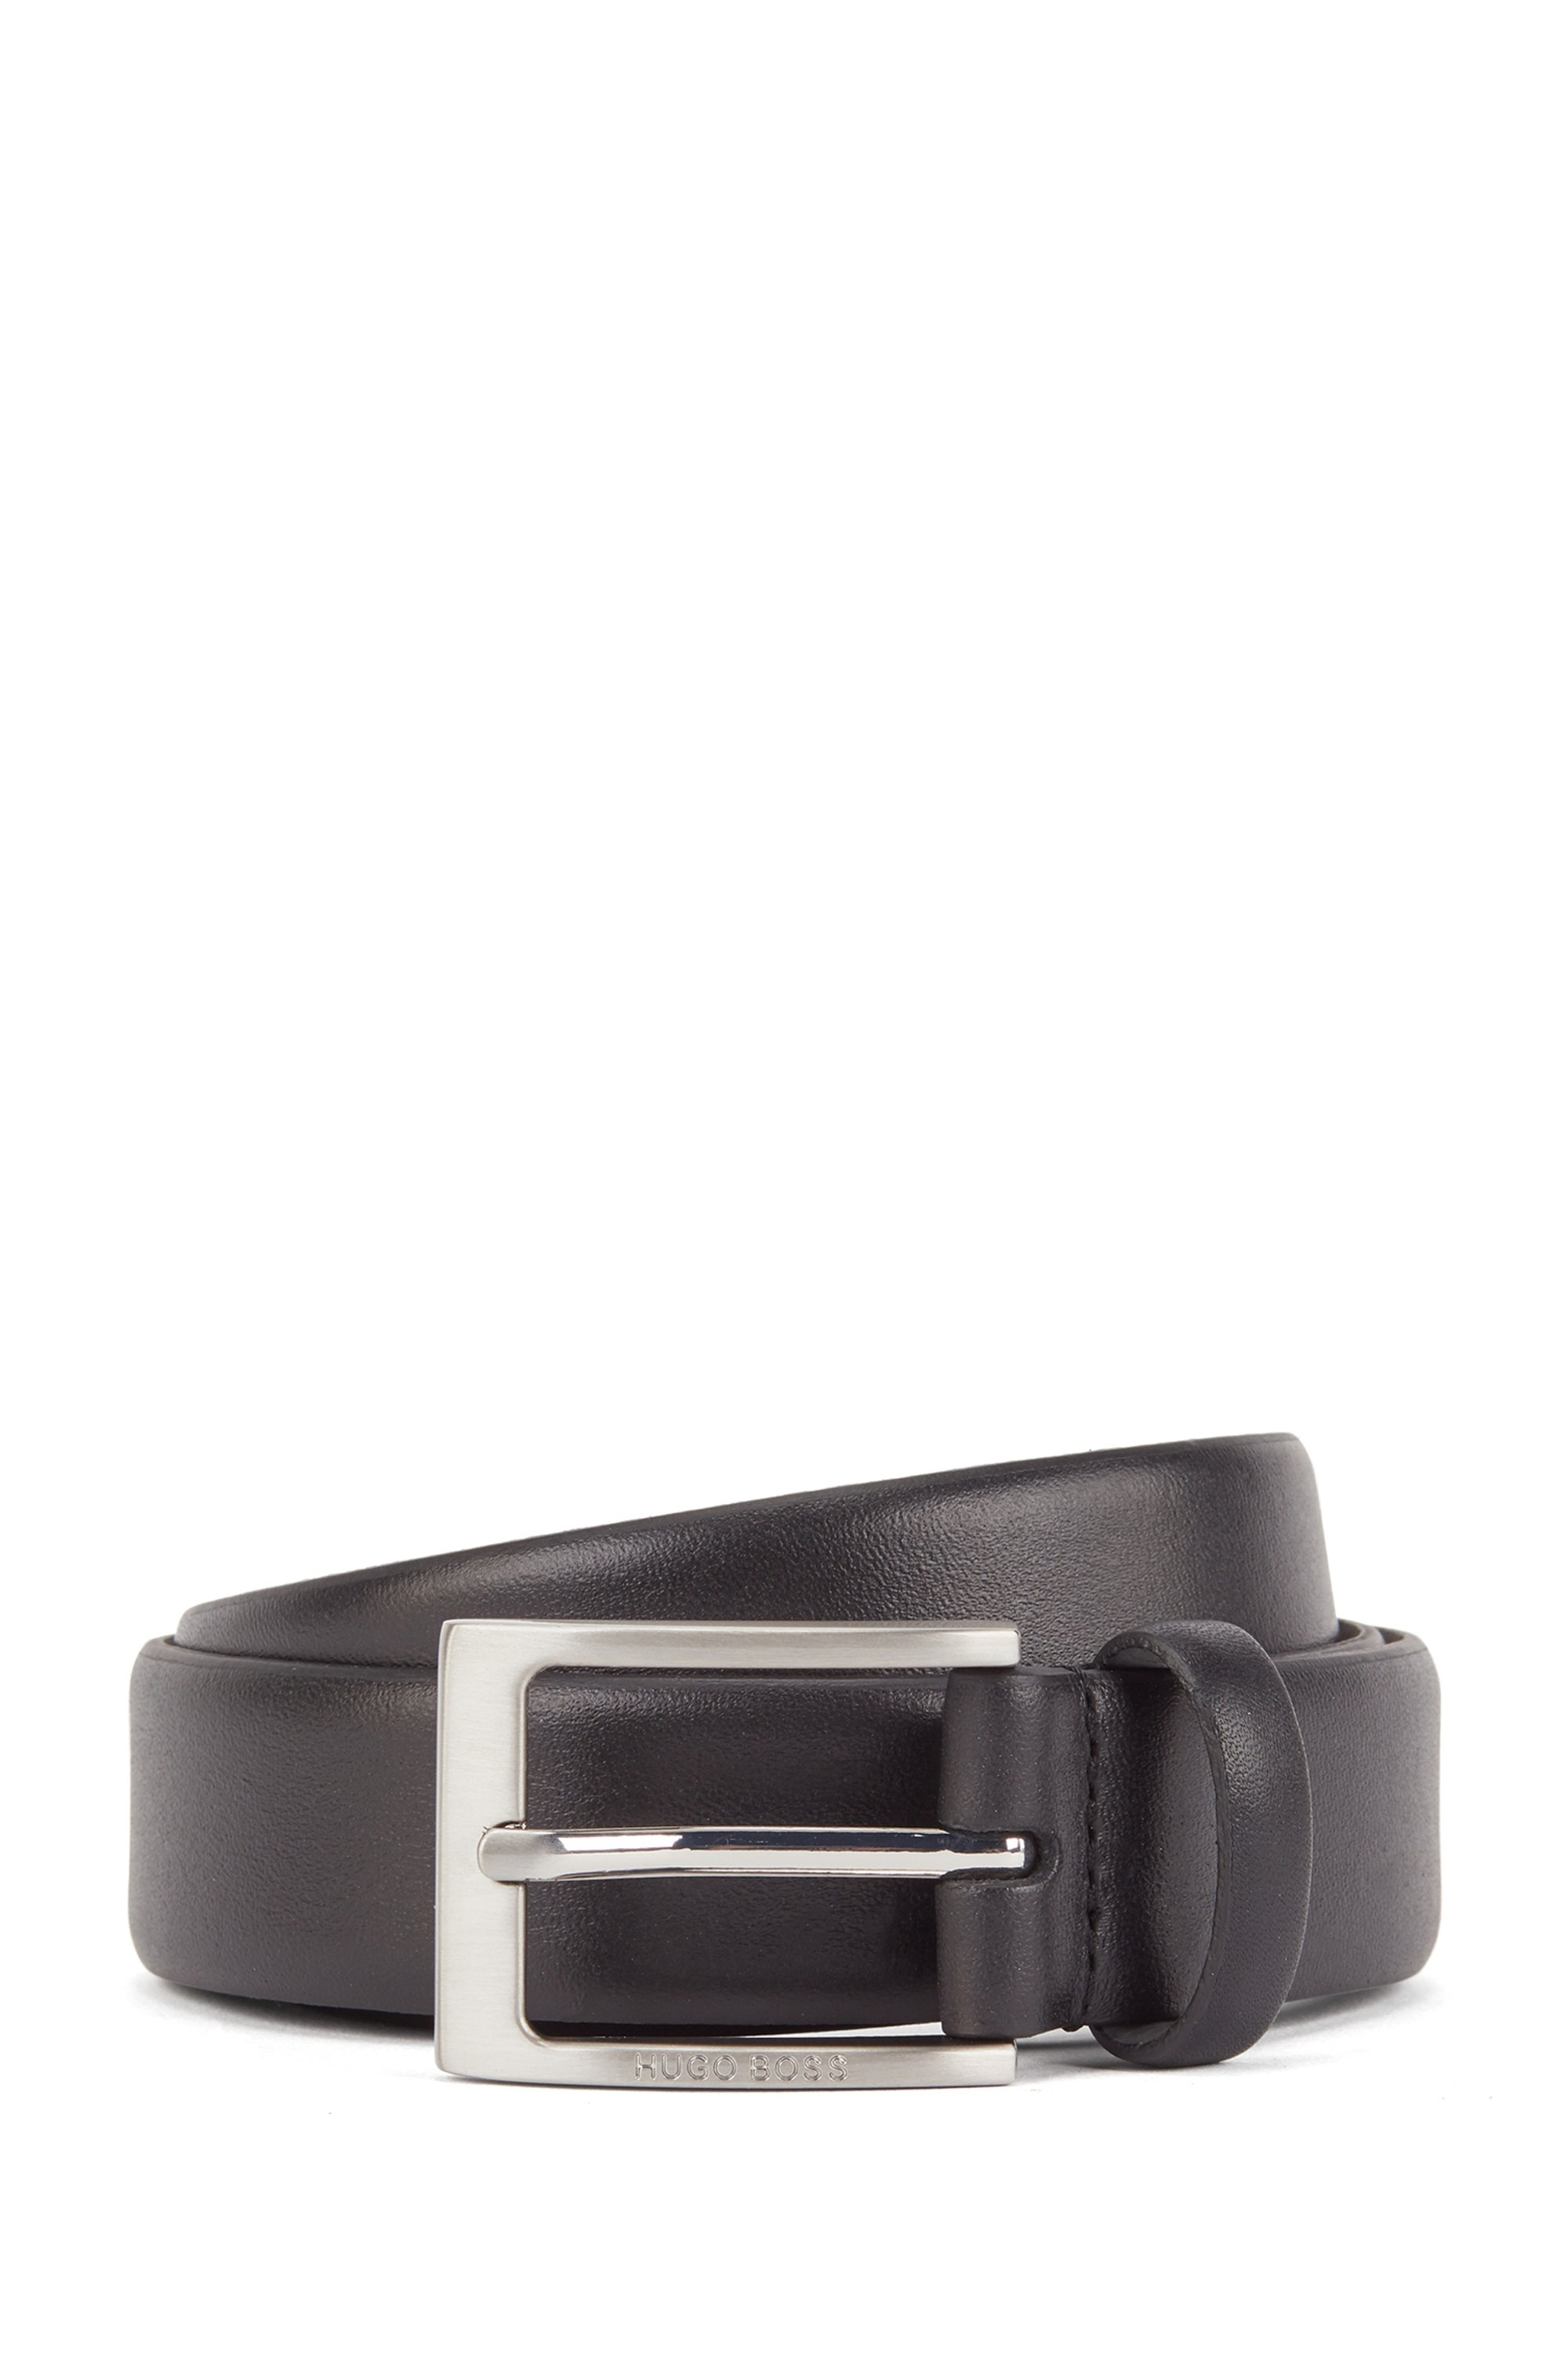 Pin-buckle belt in nappa leather with engraved logo, Black